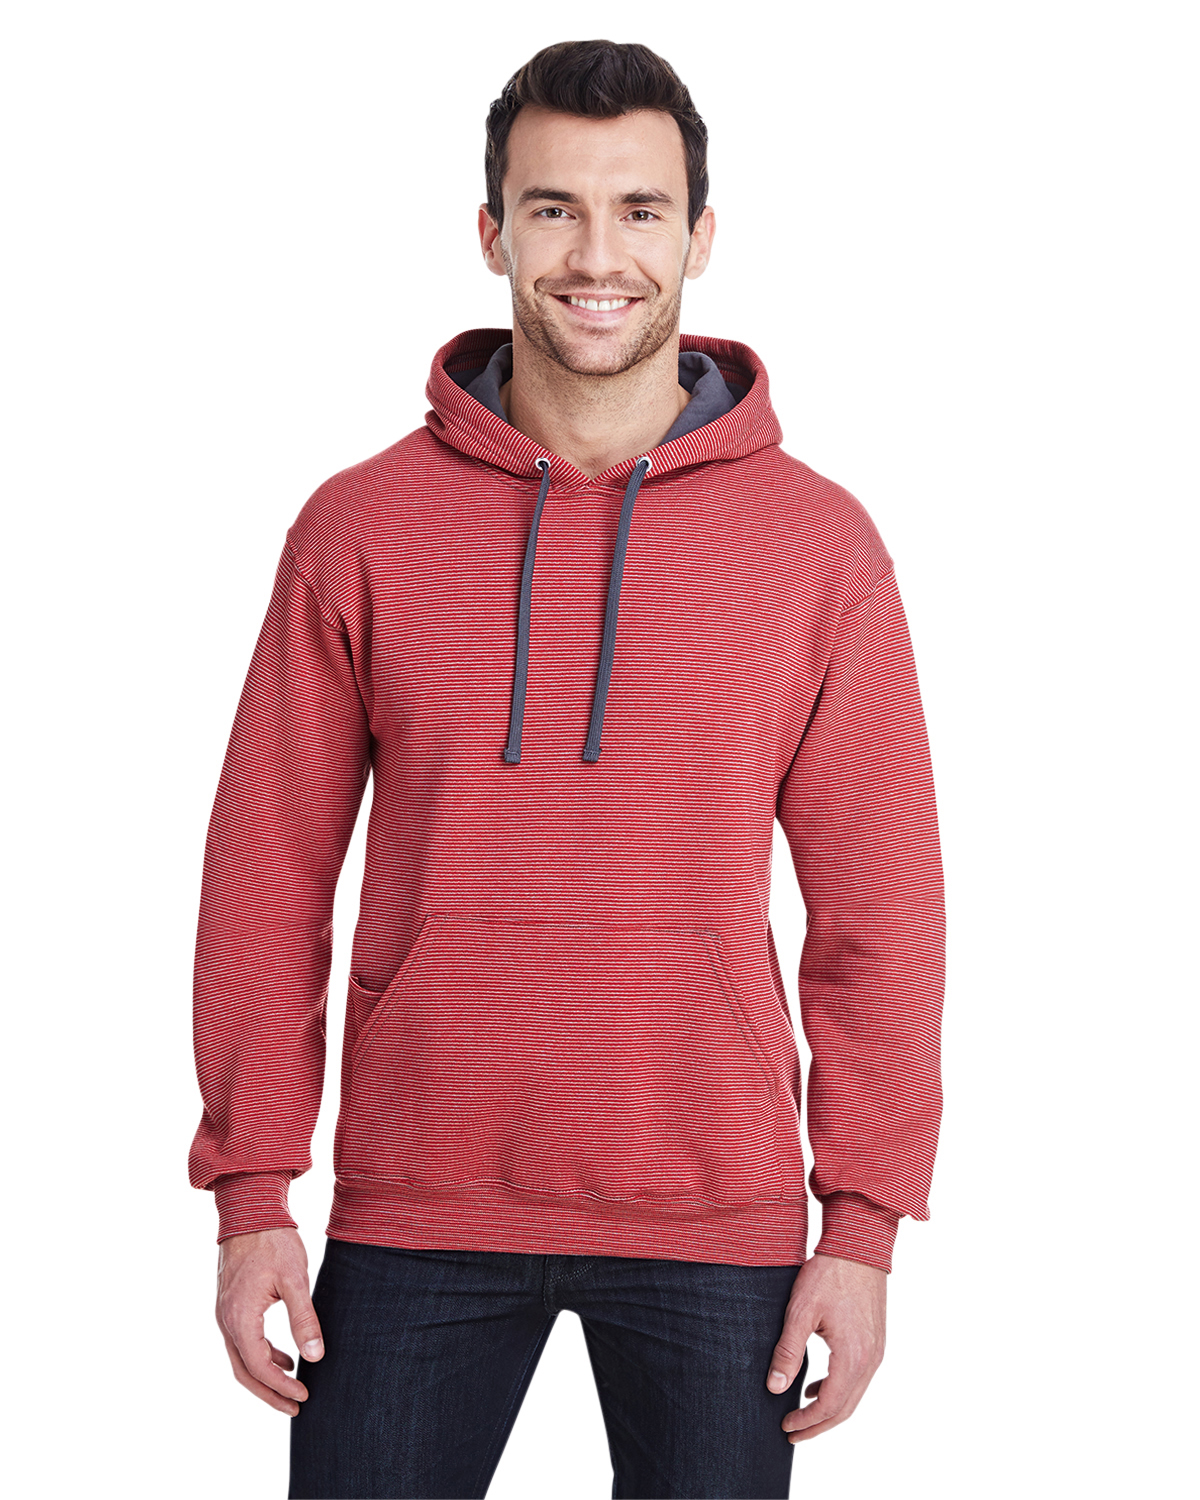 Adult 7.2 oz. Sofspun® Striped Hooded Sweatshirt